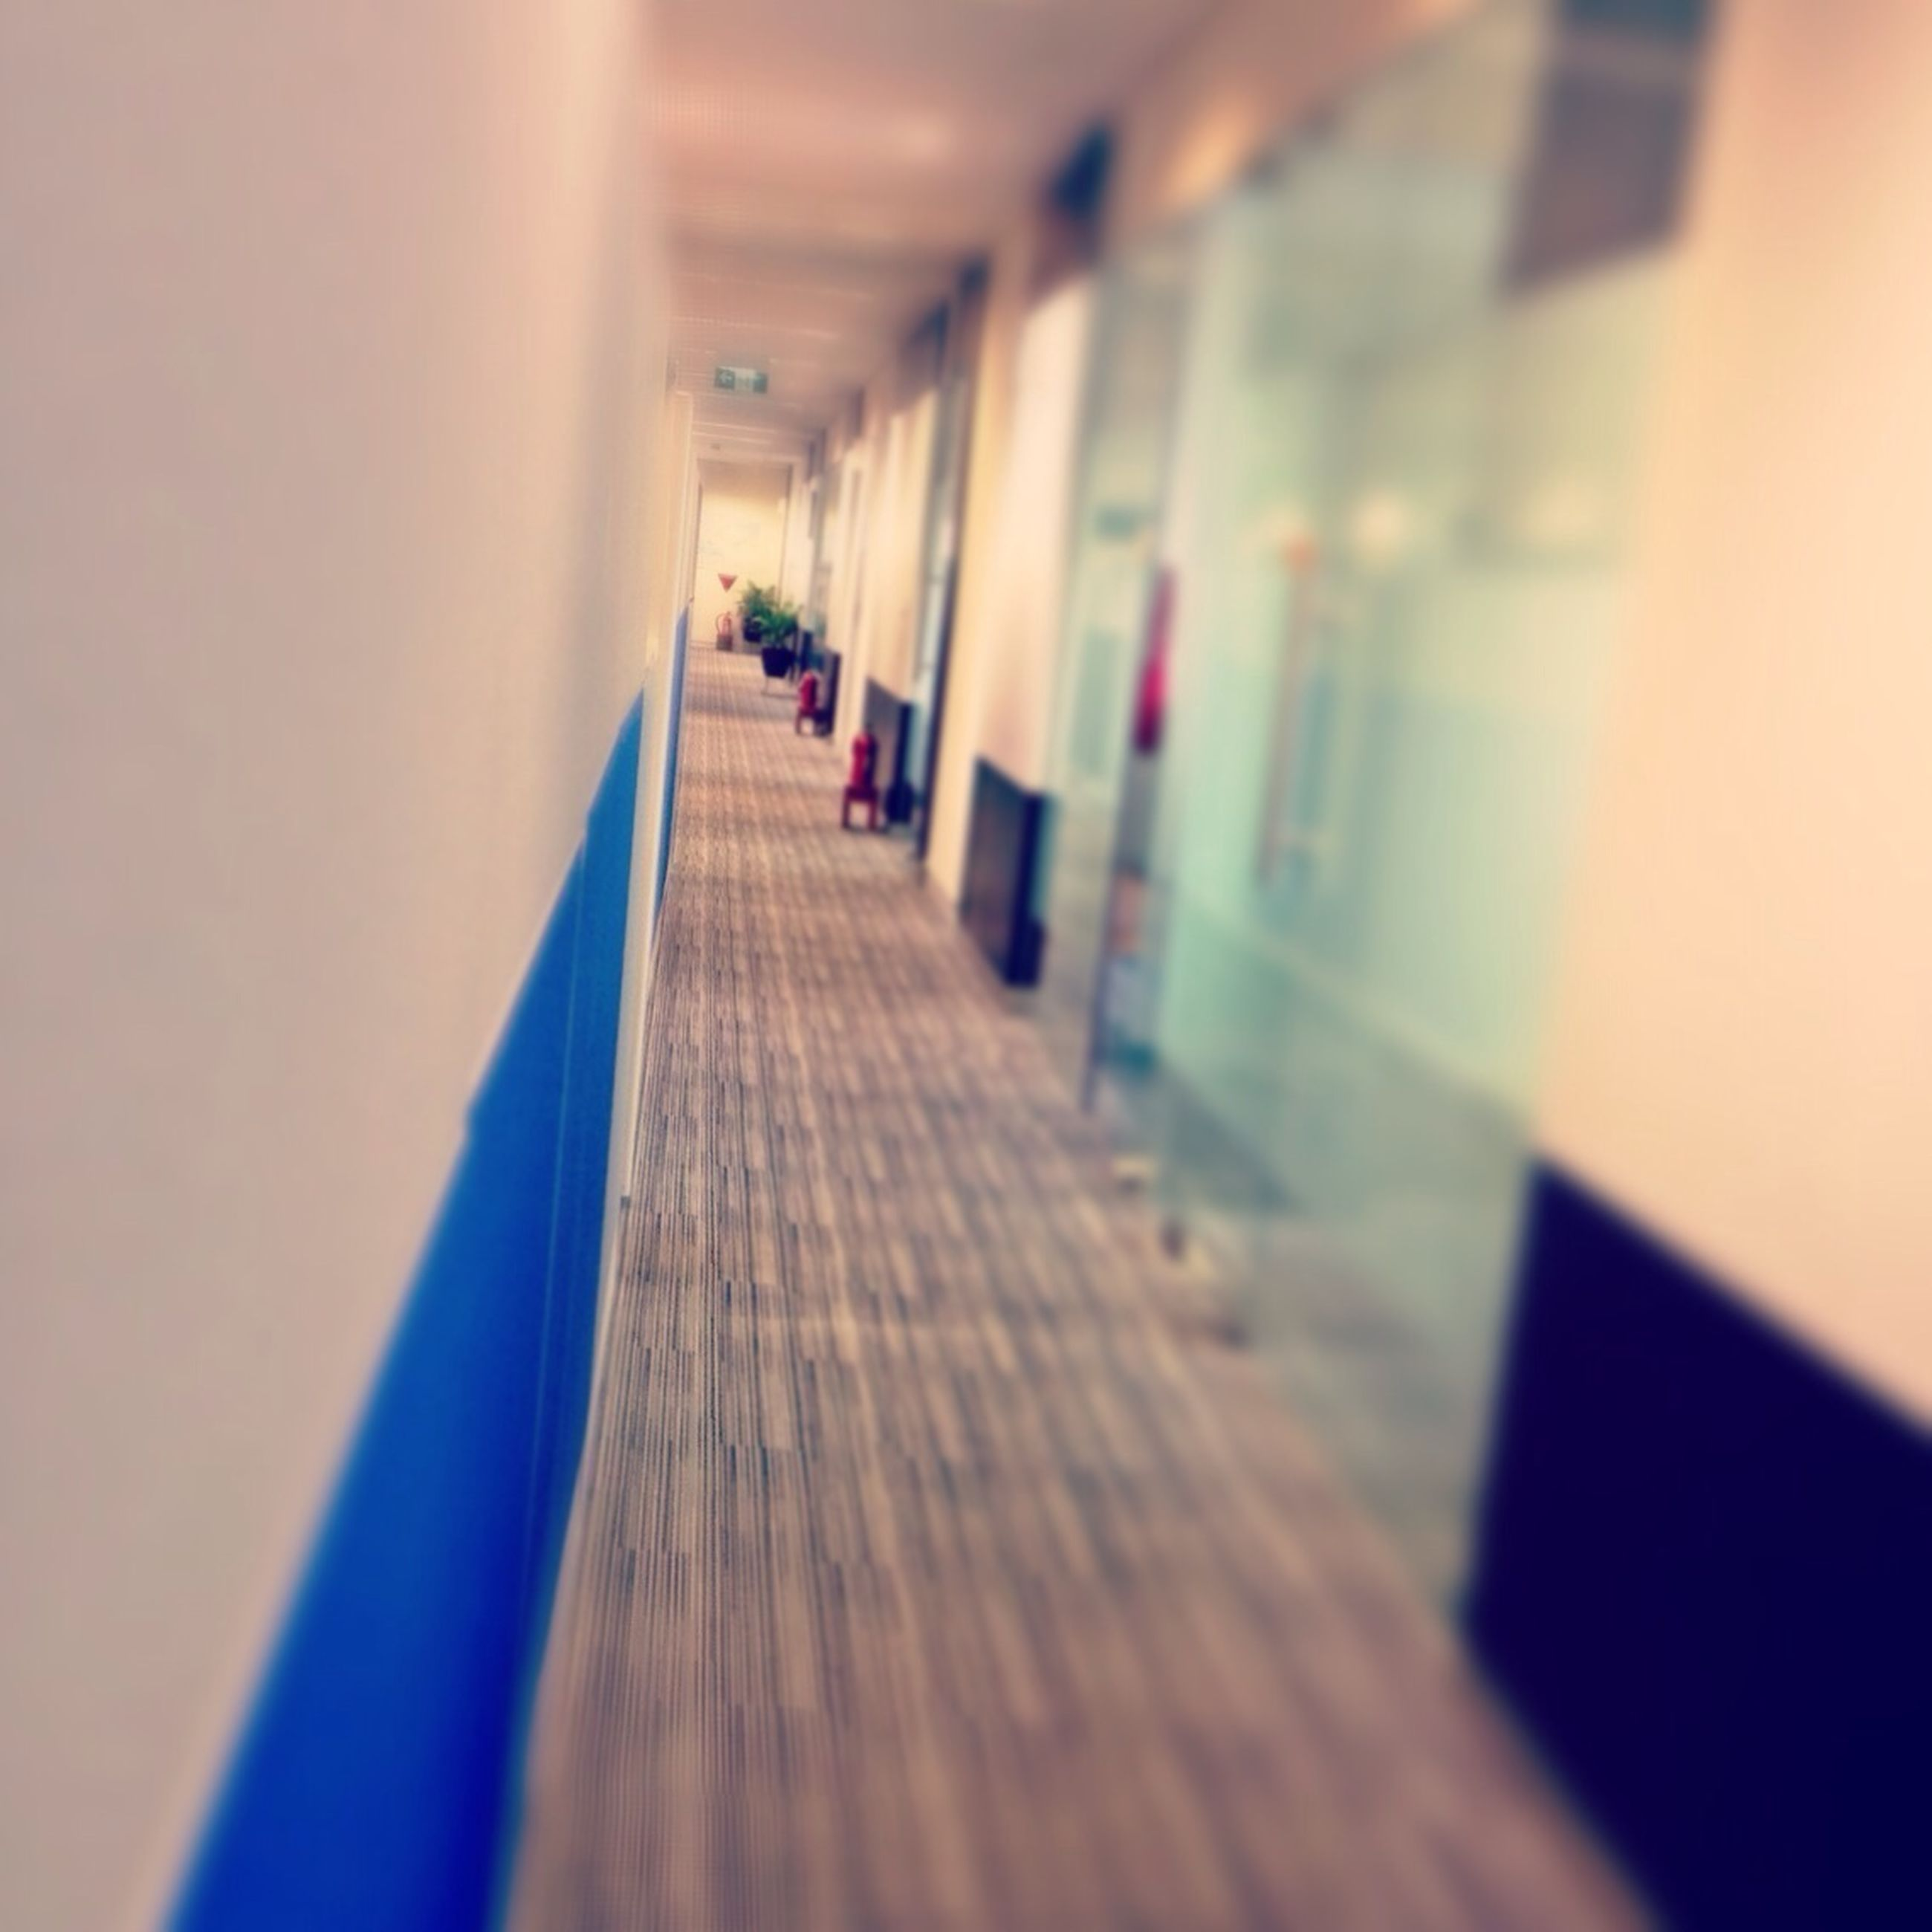 indoors, the way forward, in a row, architecture, diminishing perspective, corridor, built structure, empty, selective focus, narrow, vanishing point, surface level, absence, railing, long, steps, no people, flooring, wood - material, wall - building feature